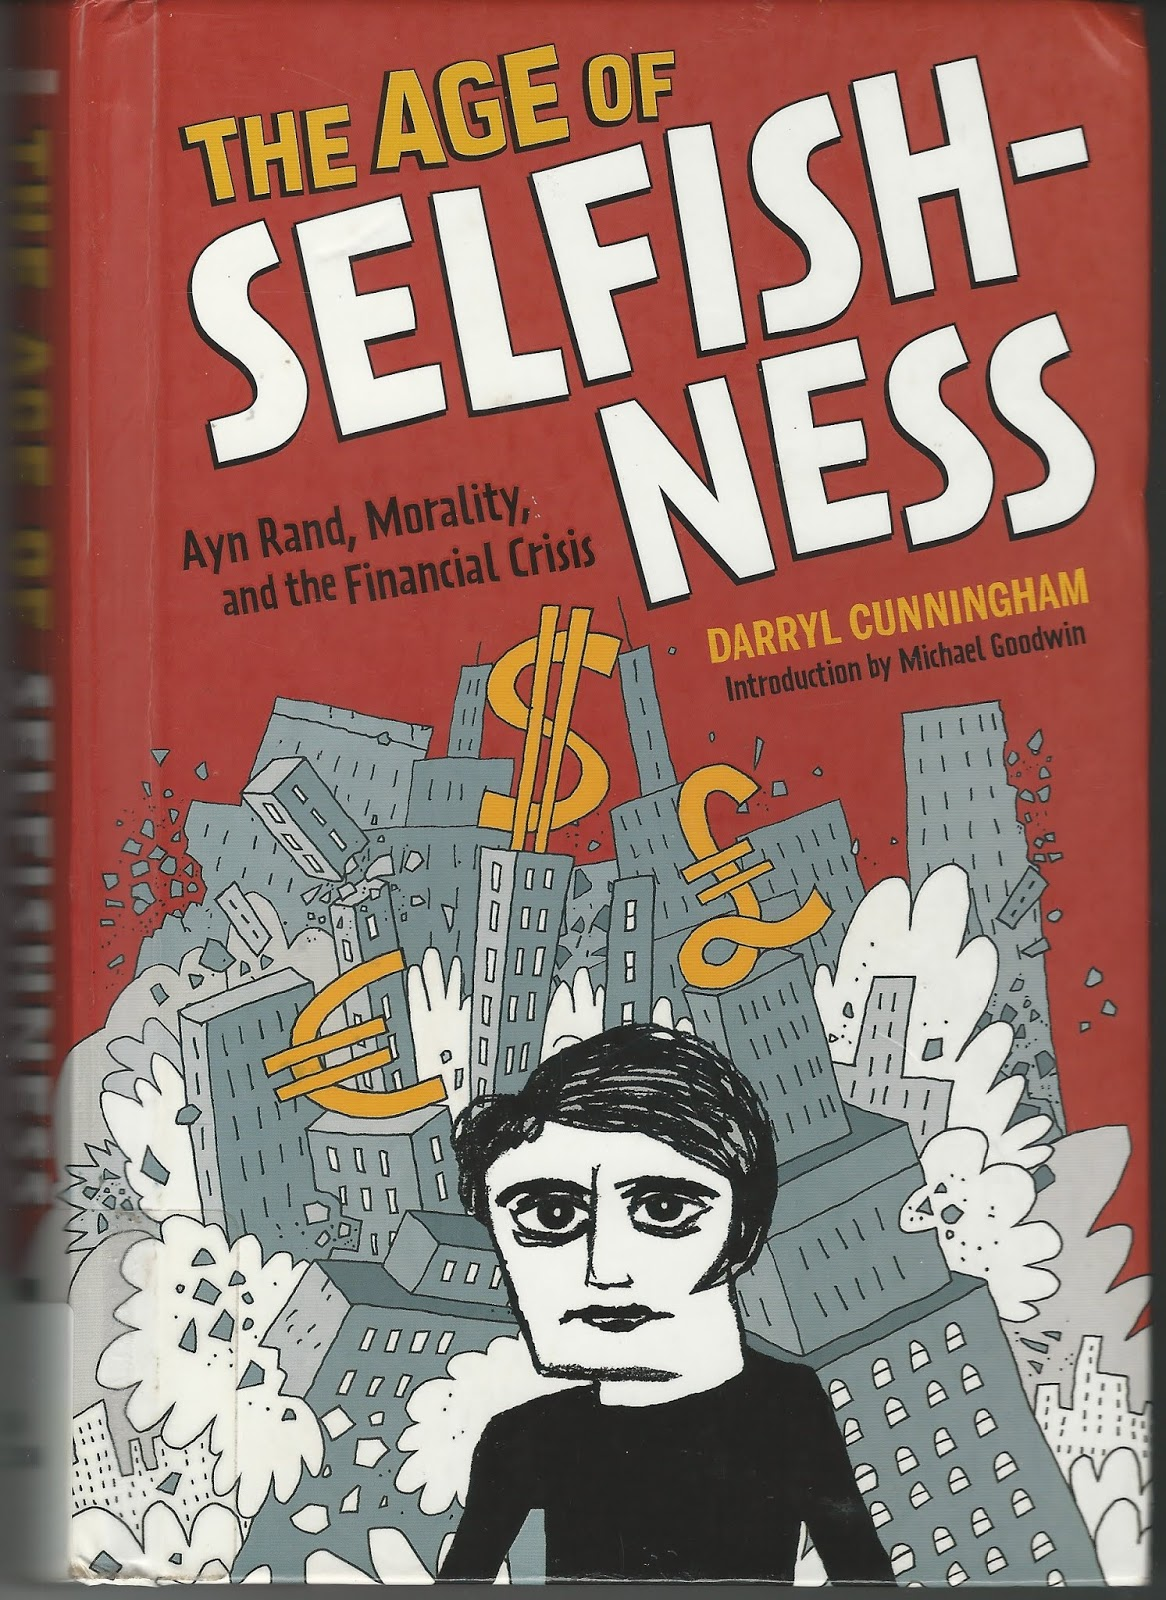 Age of Selfishness by Darryl Cunningham